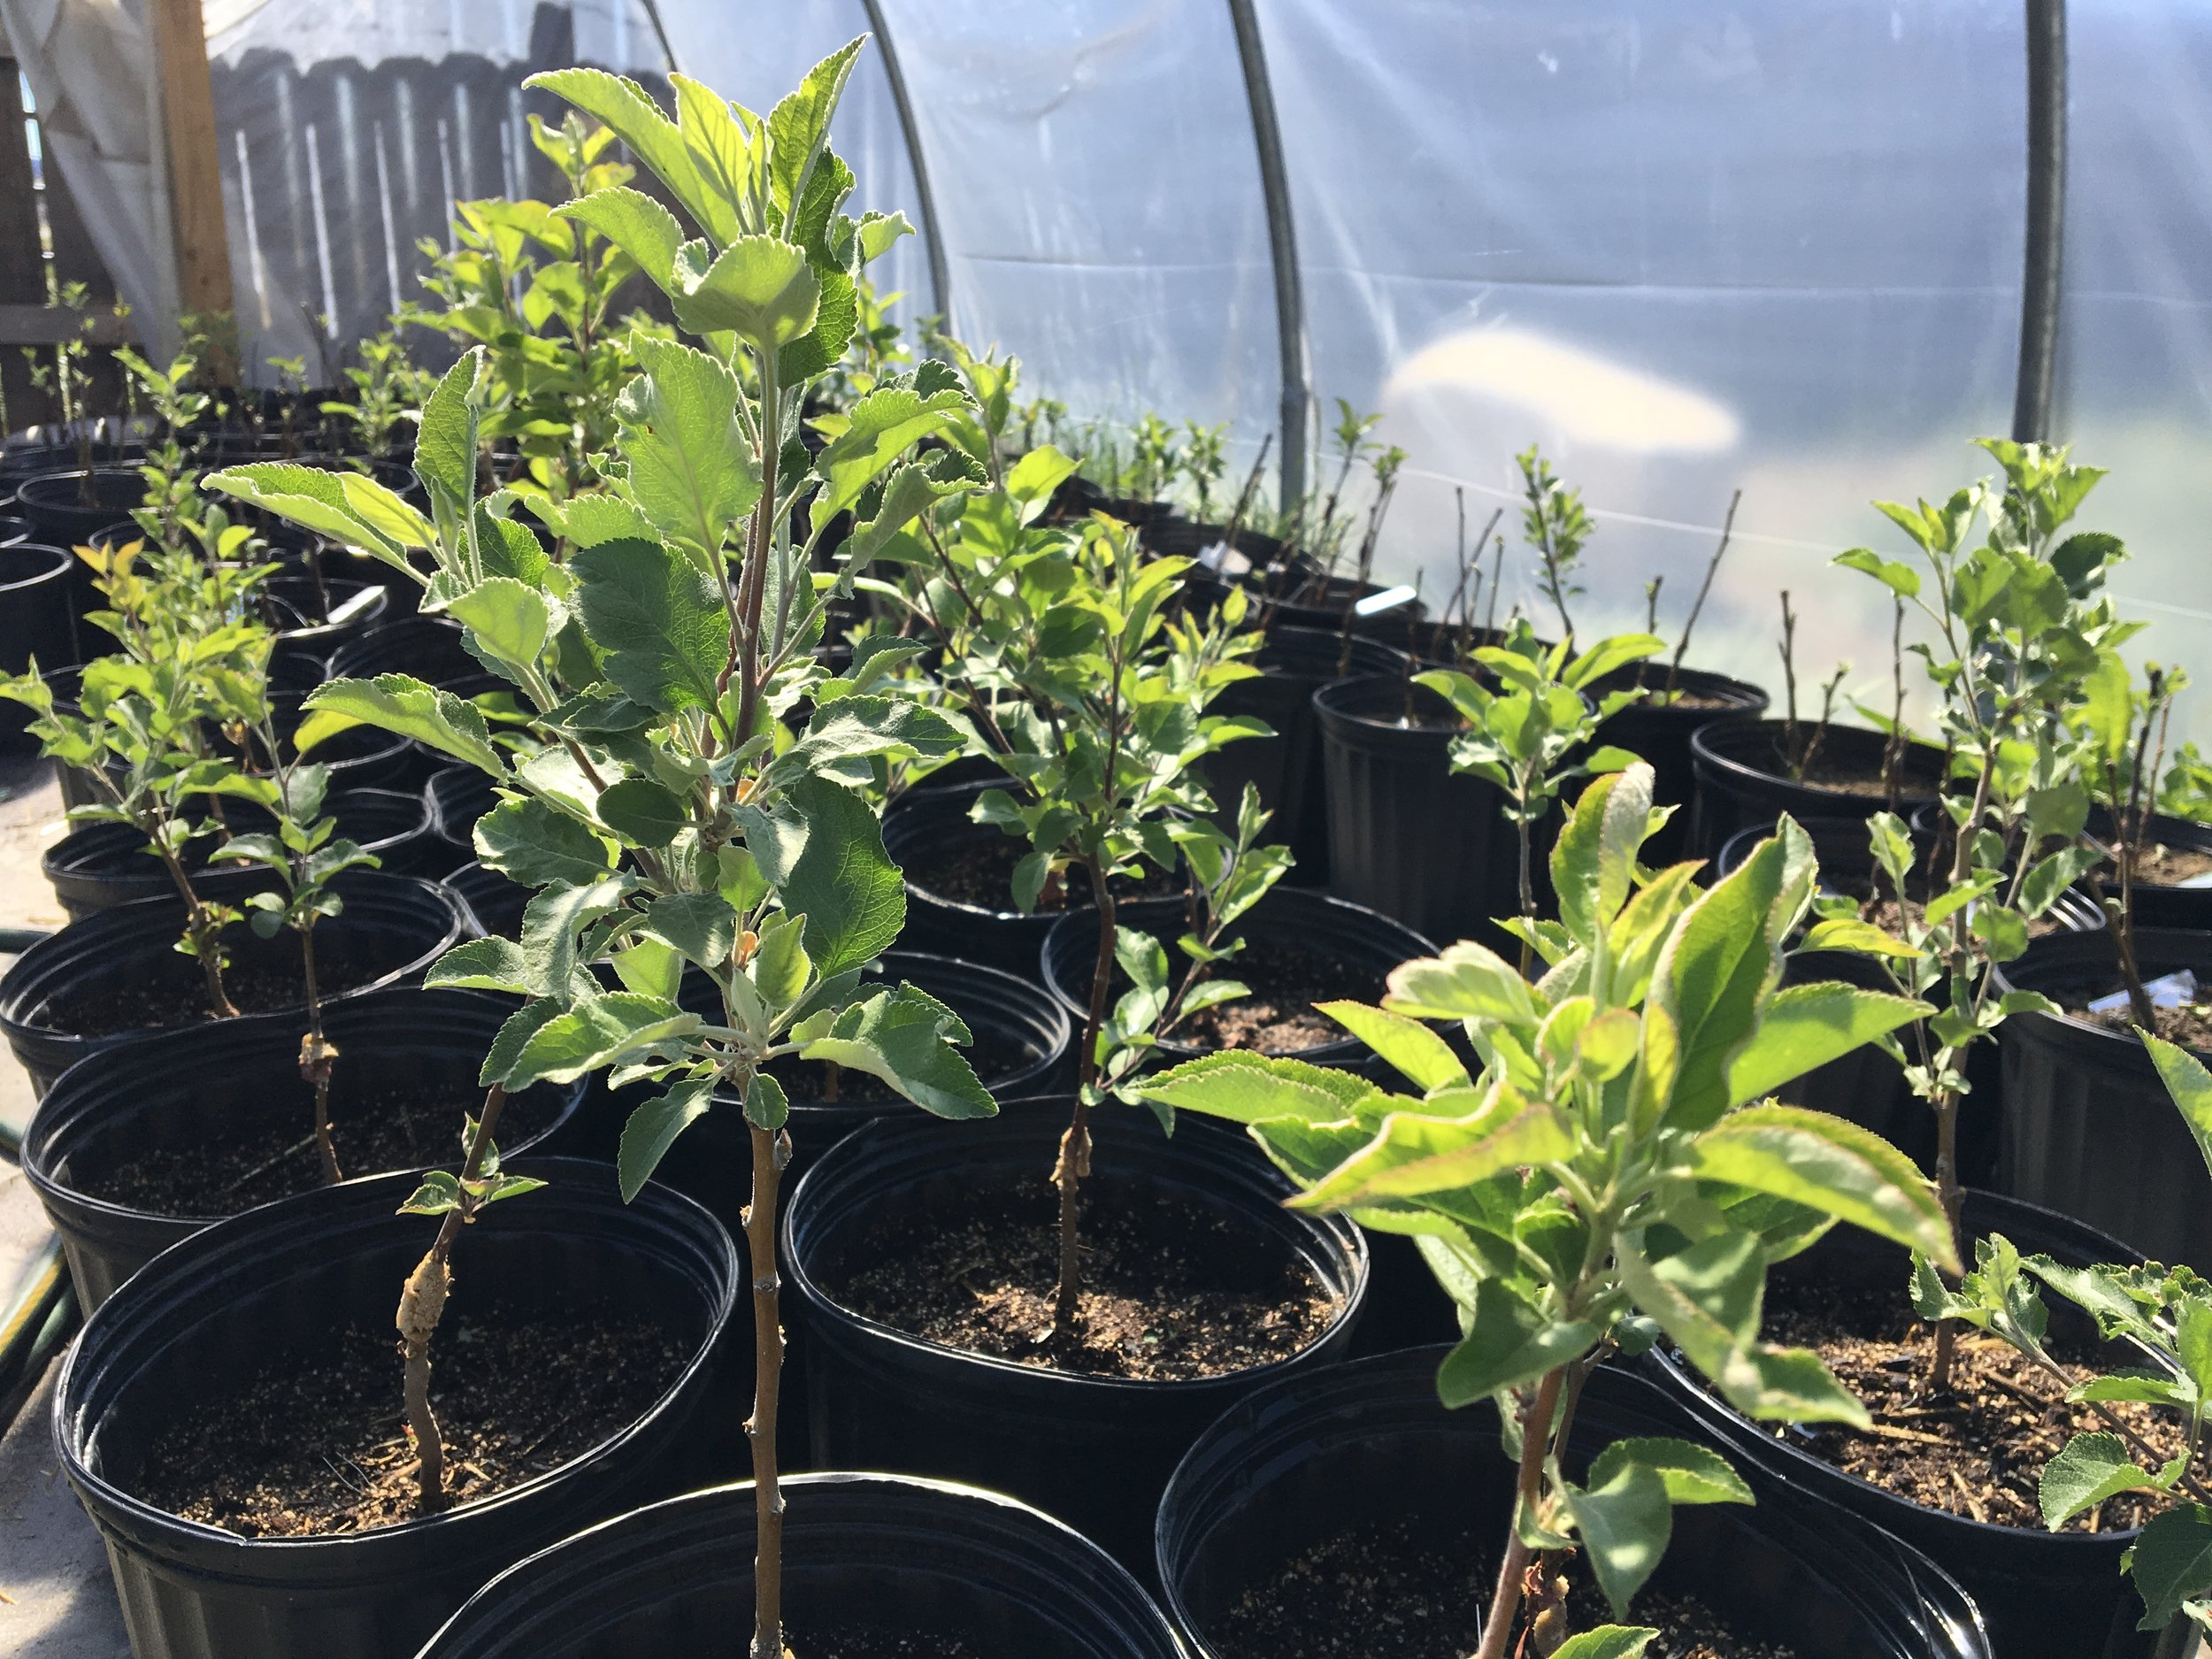 Baby apple trees, created with grafts from heirloom varieties, are ready to be sold and planted in rural southwestern Colorado, ensuring that the production of fruit carries on for many years. [Photo courtesy of the Apple Core Project]